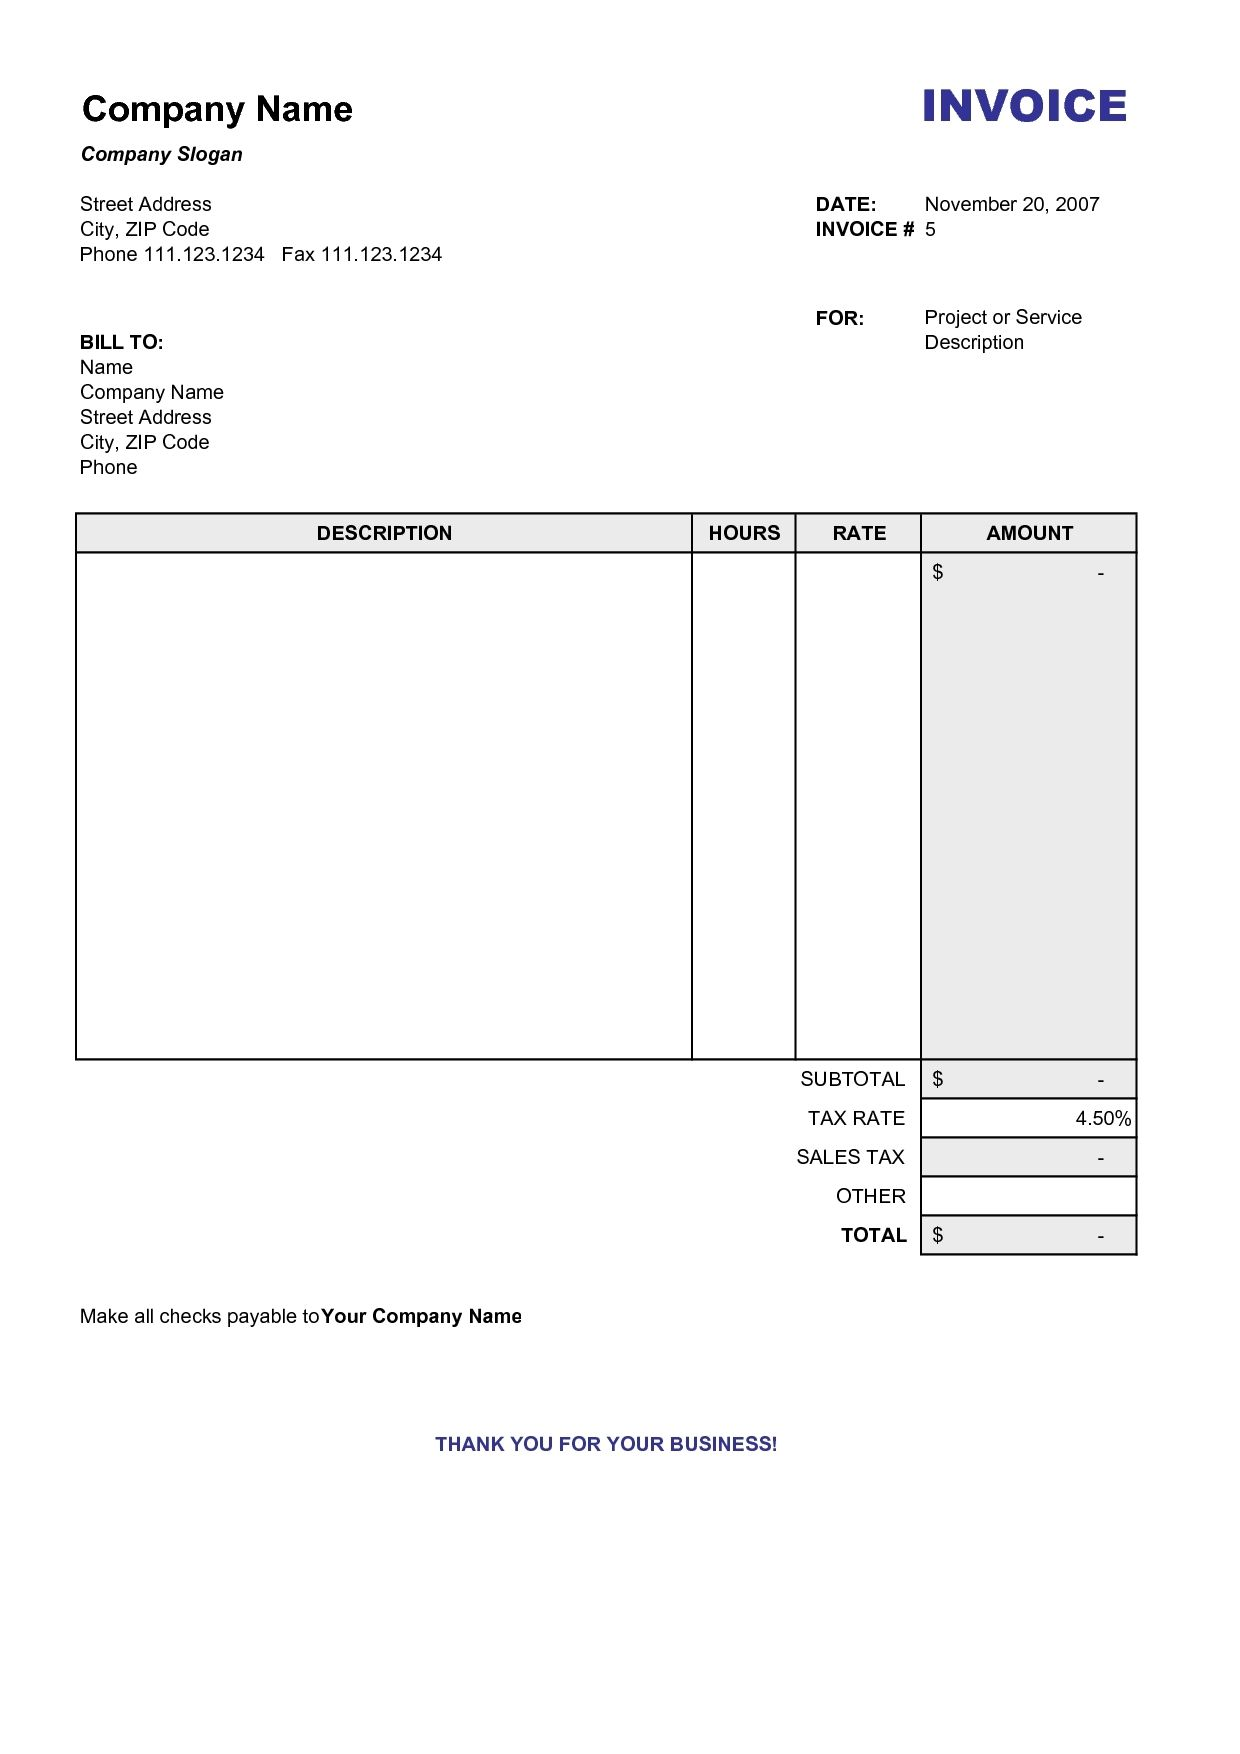 Copy Of A Blank Invoice Invoice Template Free Copy Of Blank - Free invoice template : create an invoice in word